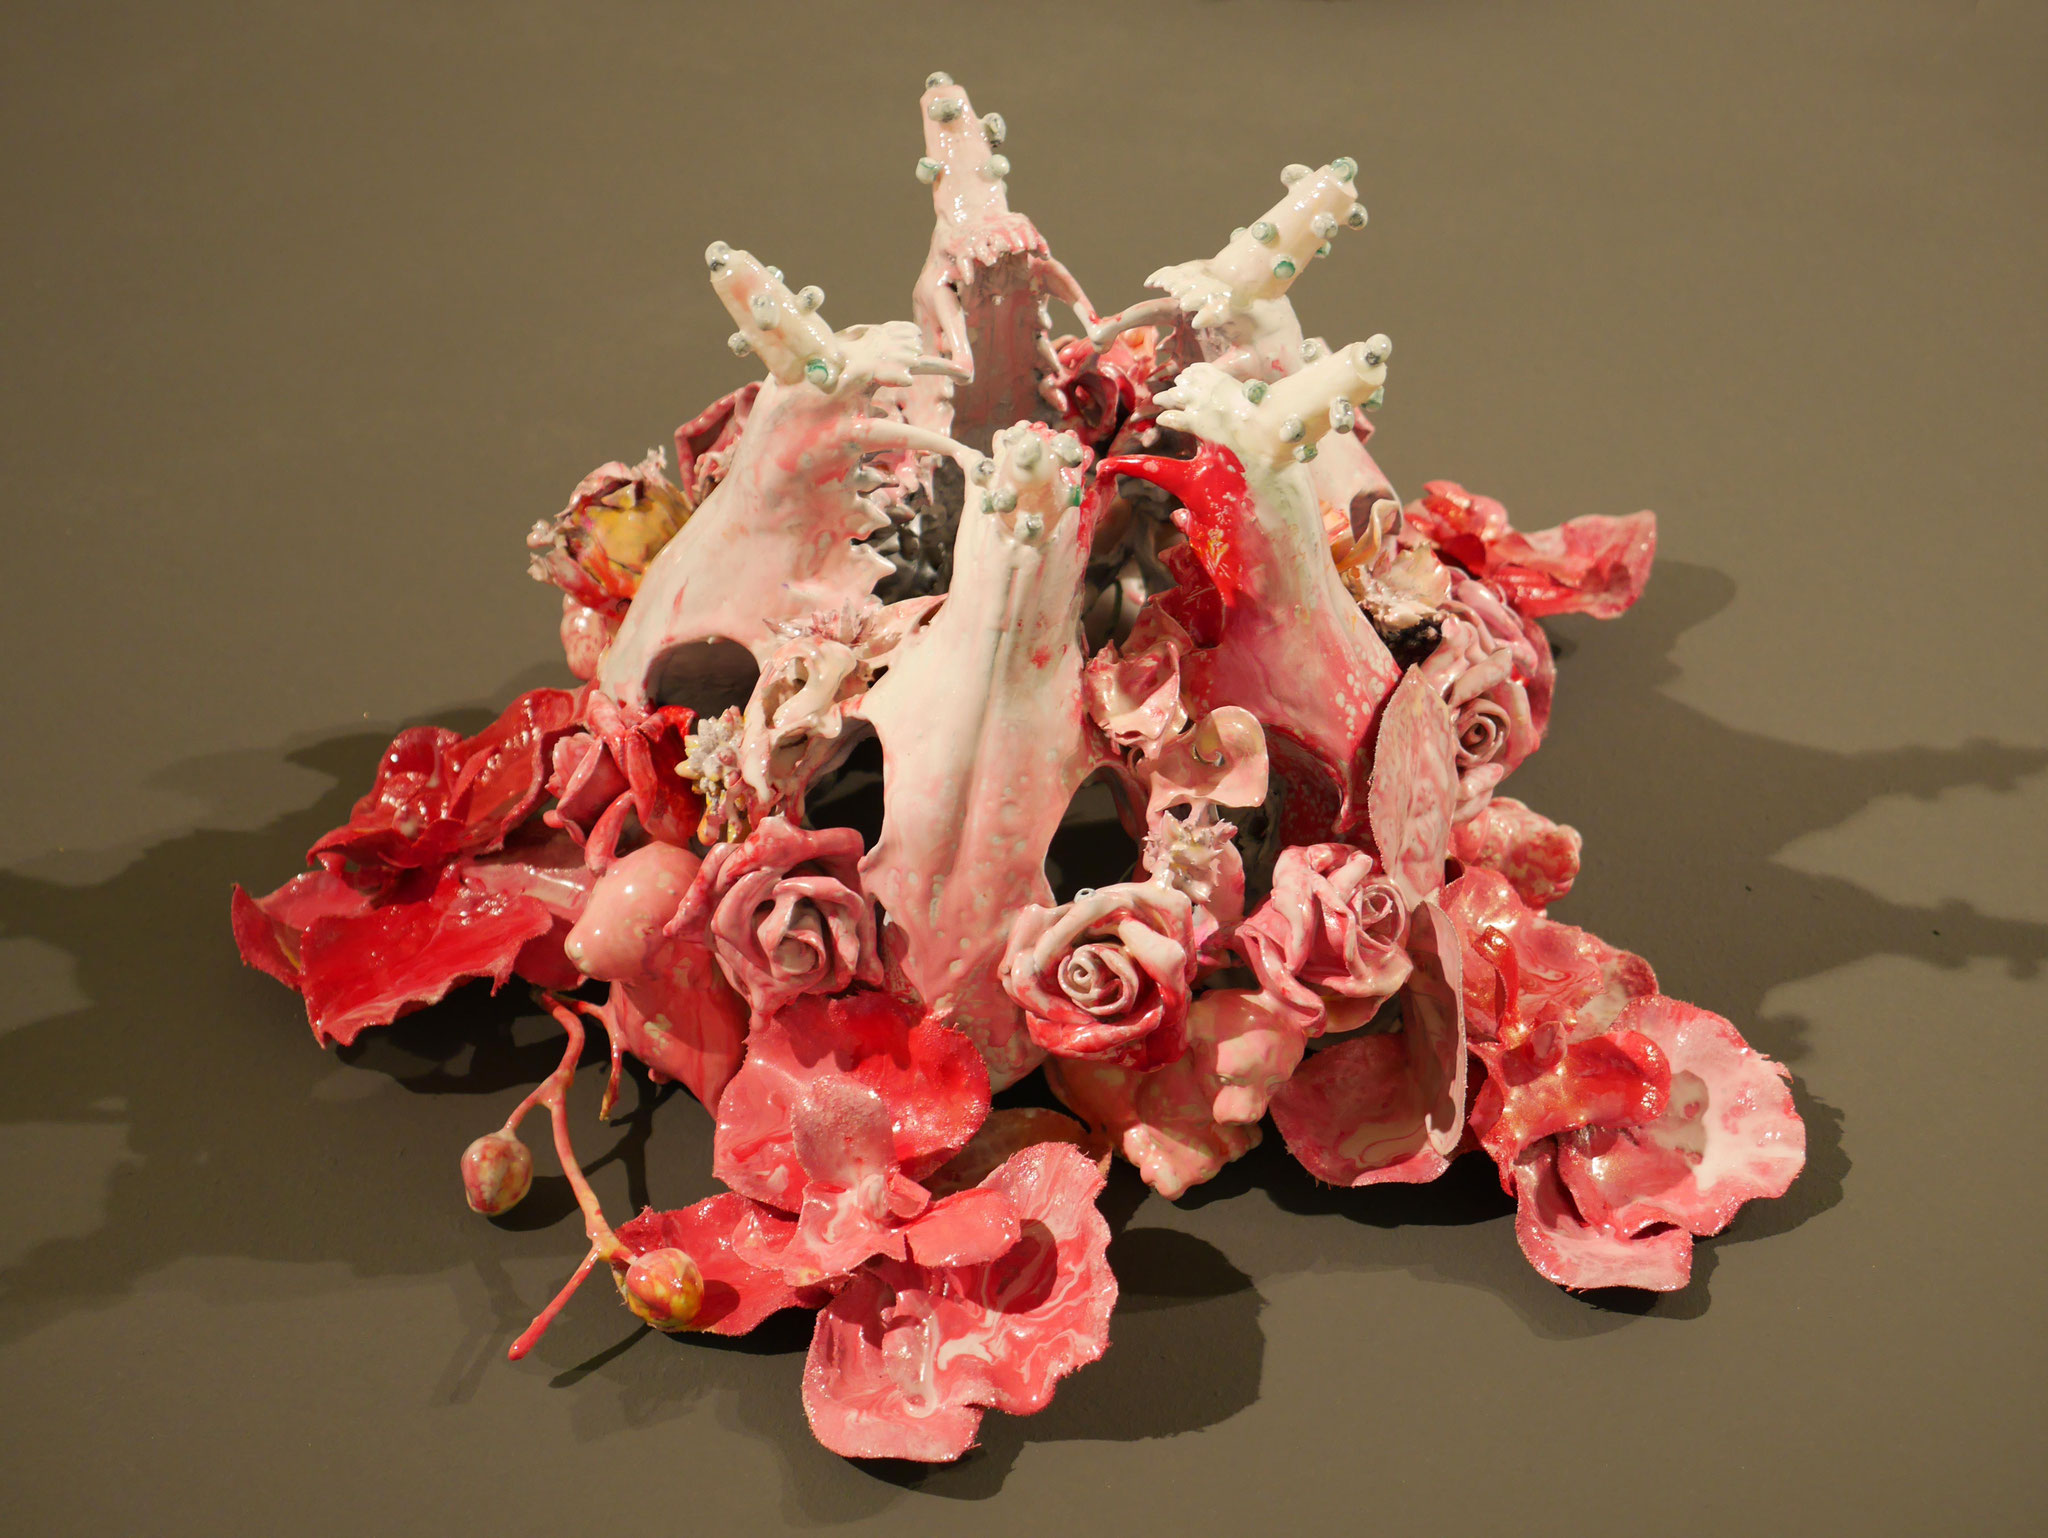 #17, 2016, fox sculls, plastic flowers, plastic toys and dried flowers coated with epoxy resin, 29x30x16cm